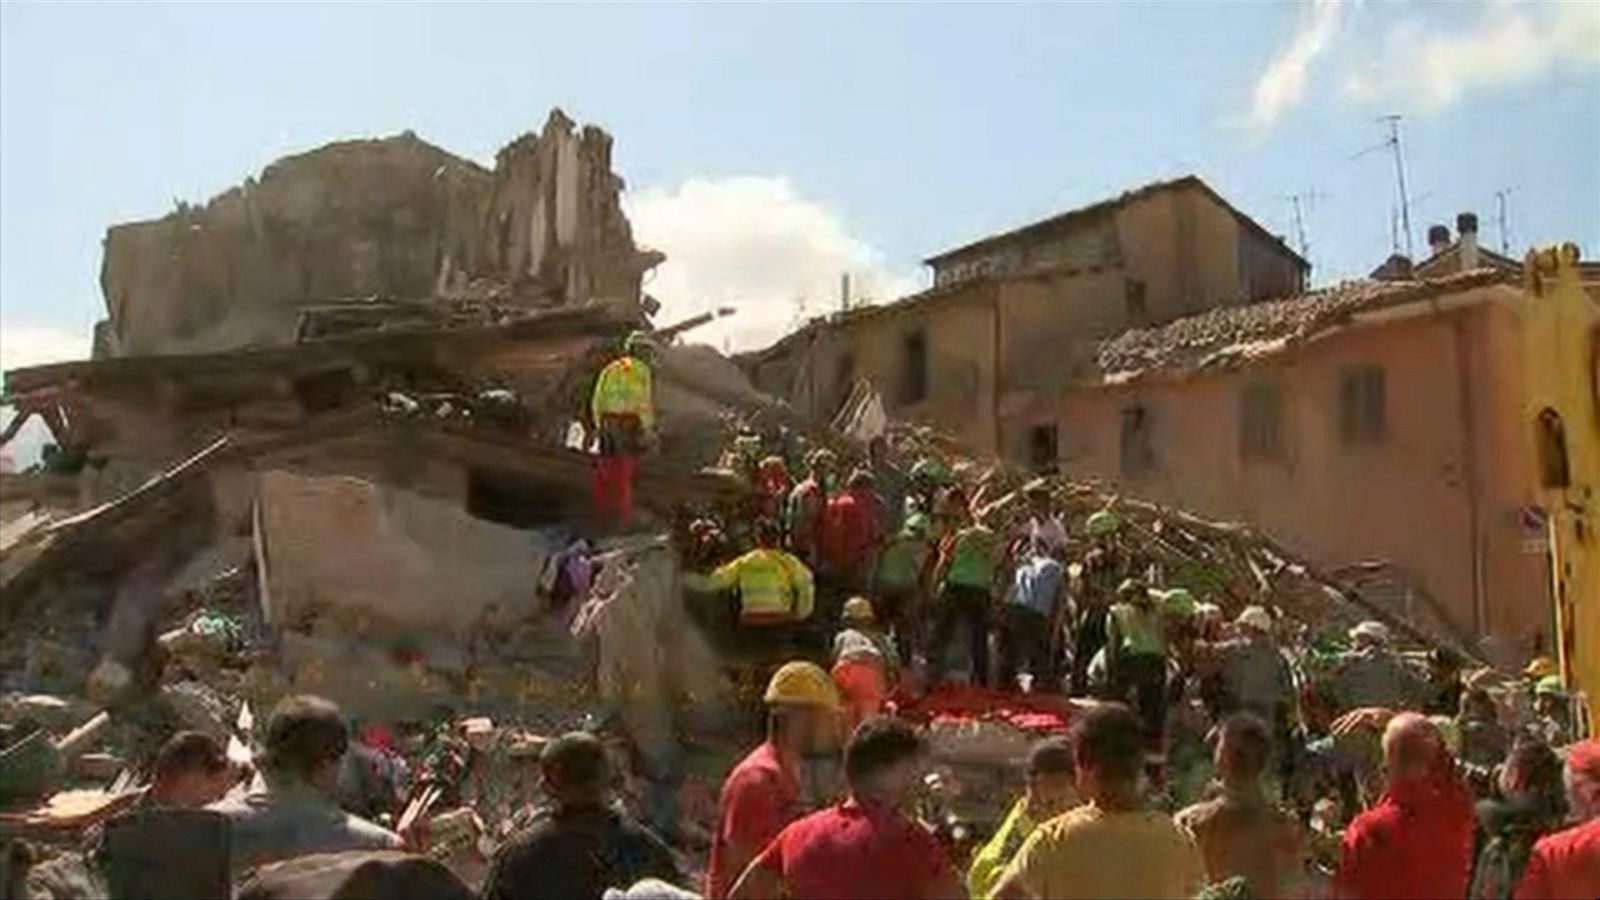 VIDEO: Italy Quake Zone Continues to Feel Aftershocks